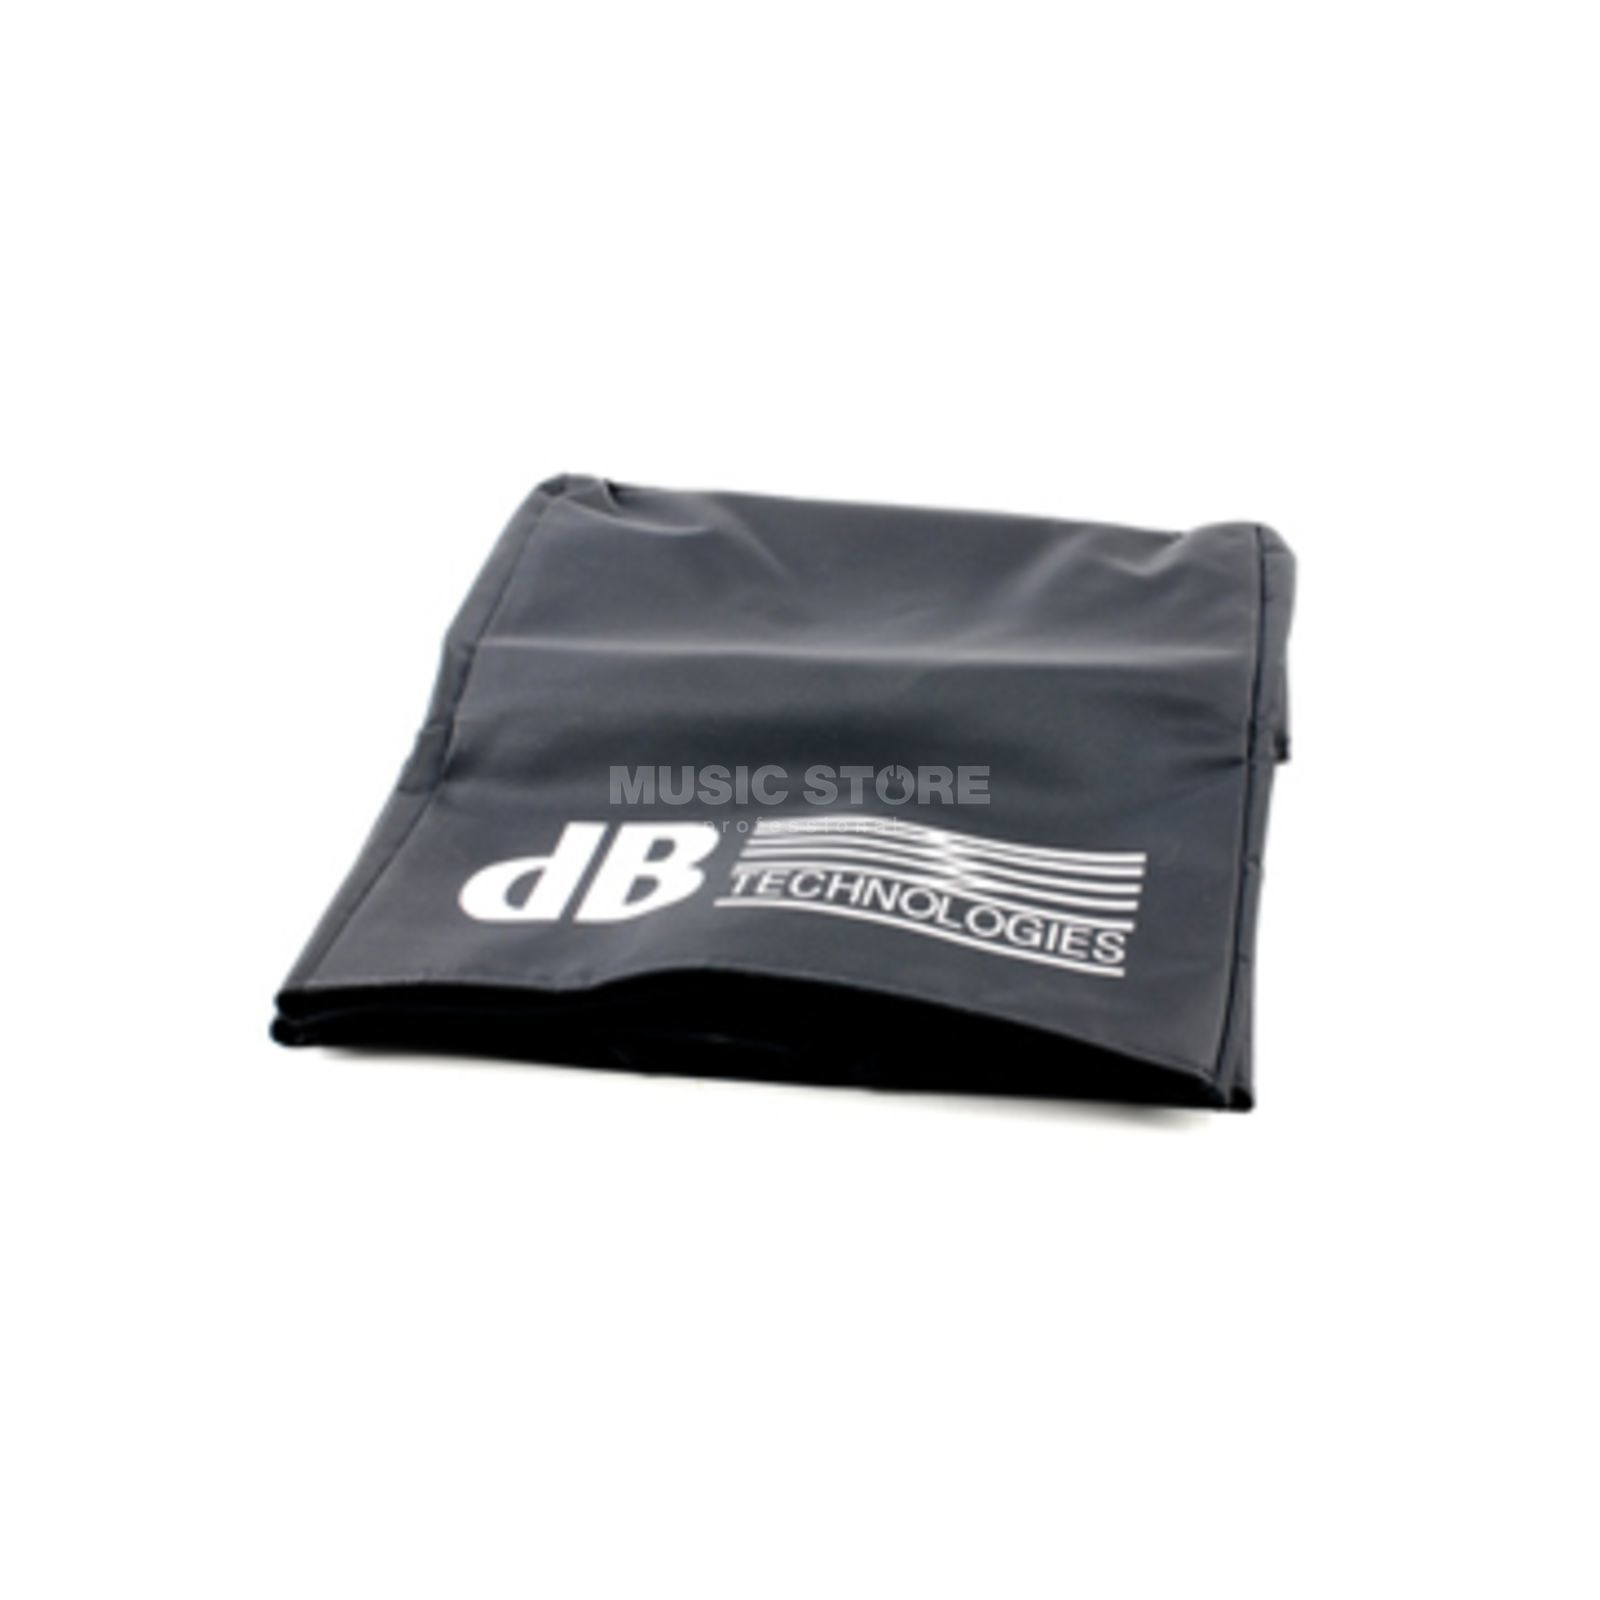 dB Technologies TC 08S Protective Cover for DVA S08 Subwoofer Produktbillede